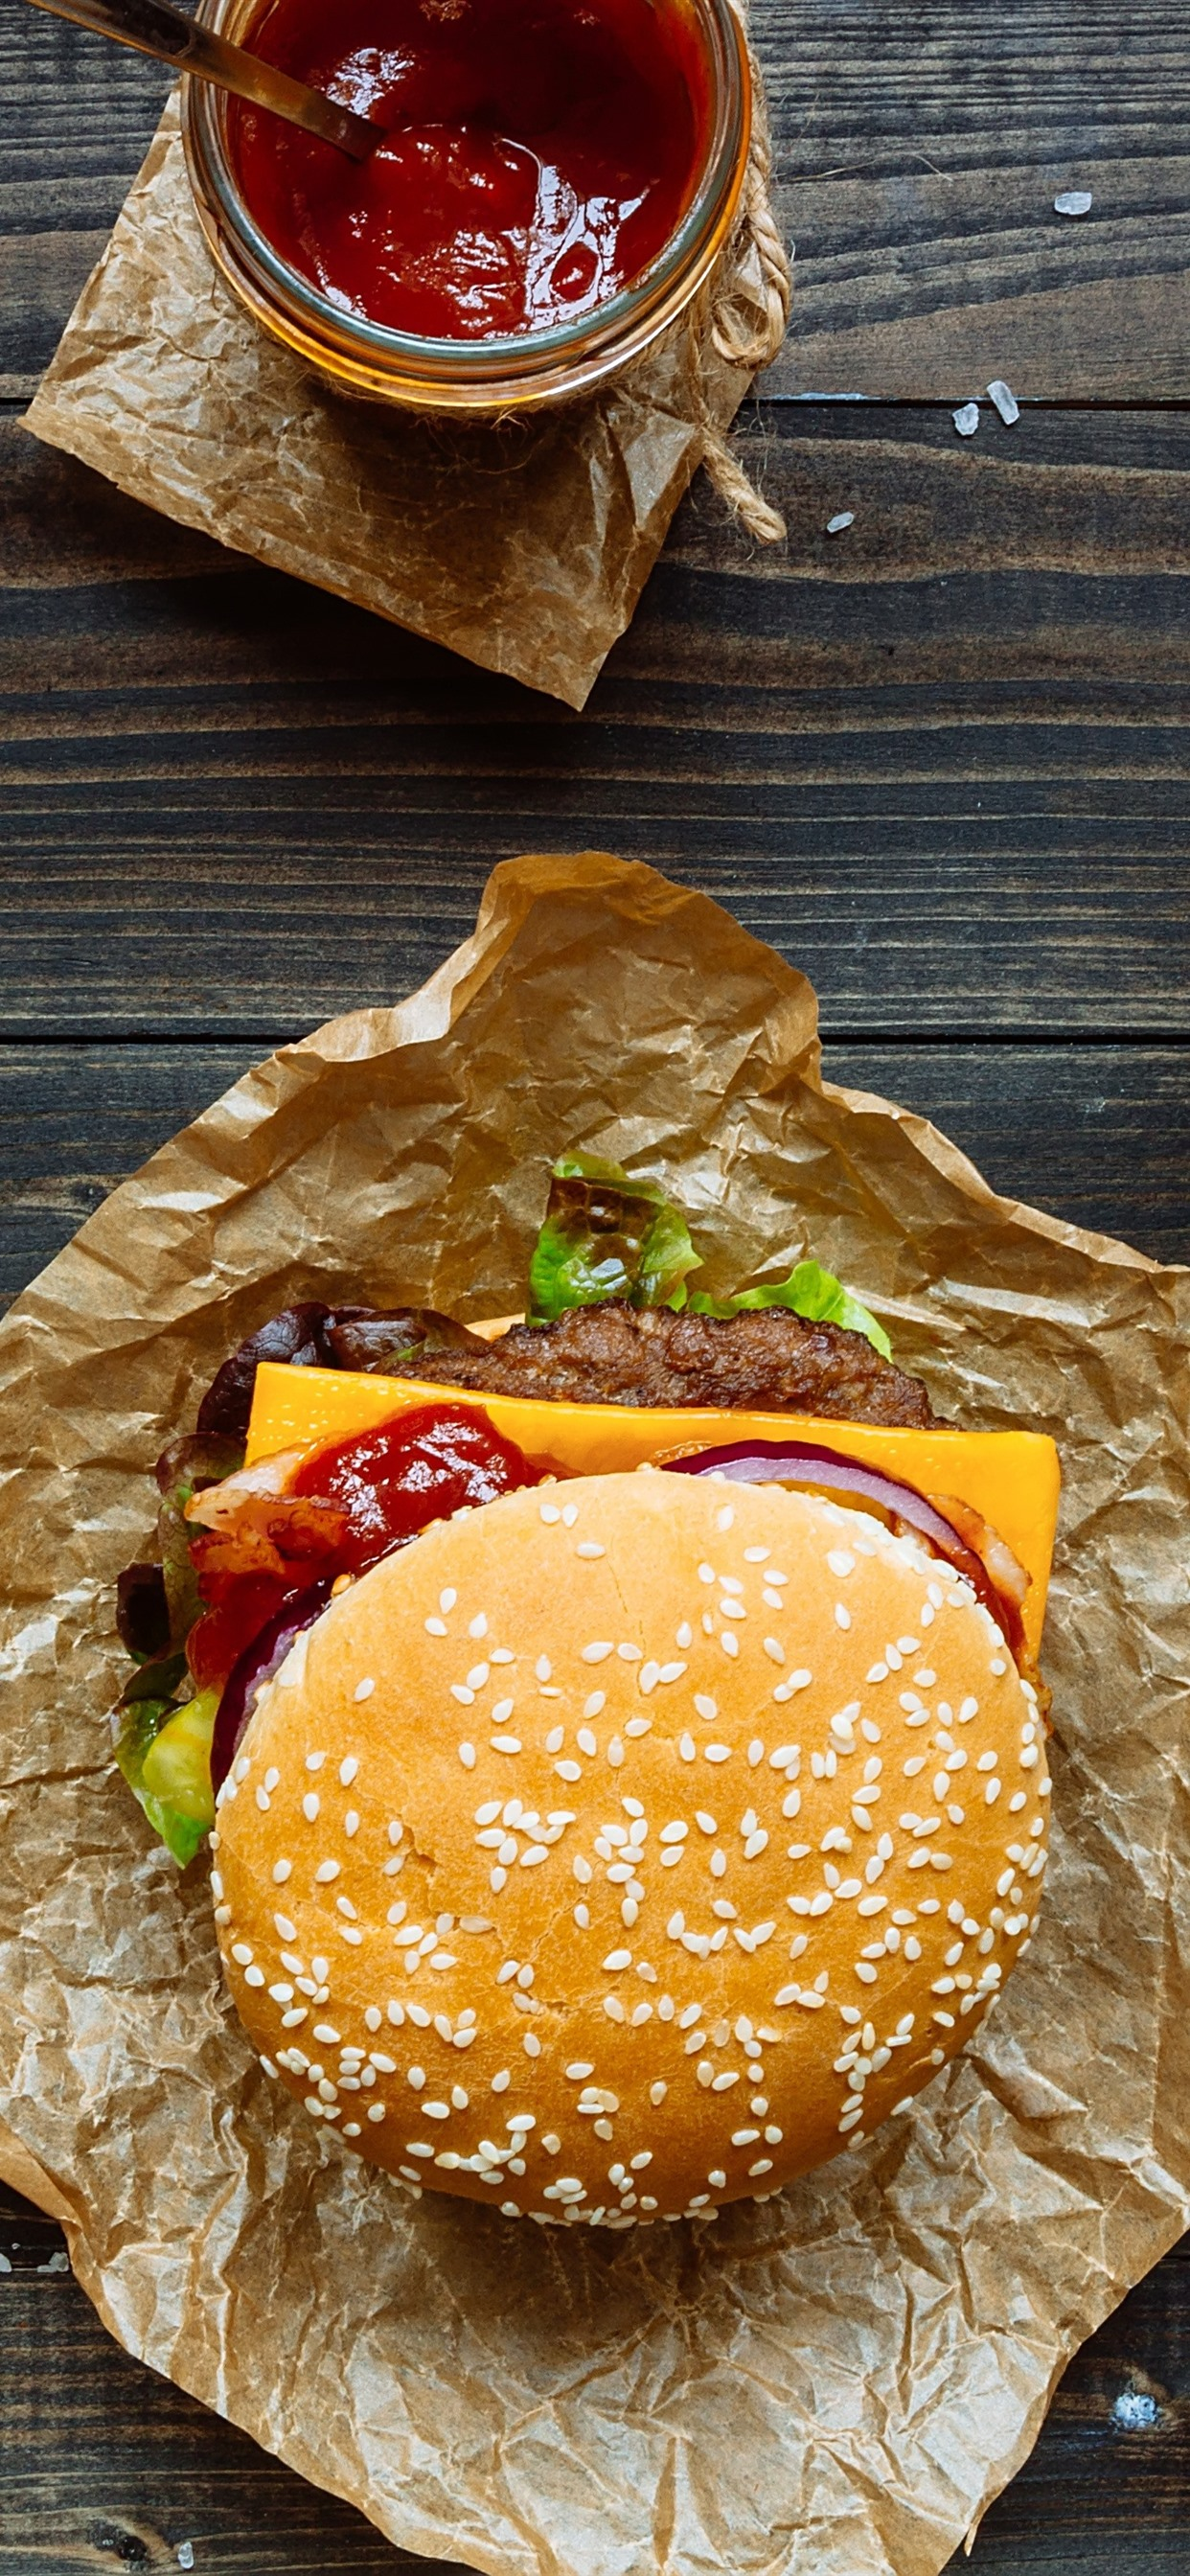 Wallpaper Fast Food Hamburger Sandwich Salad Tomato Cheese Drinks 5120x2880 Uhd 5k Picture Image